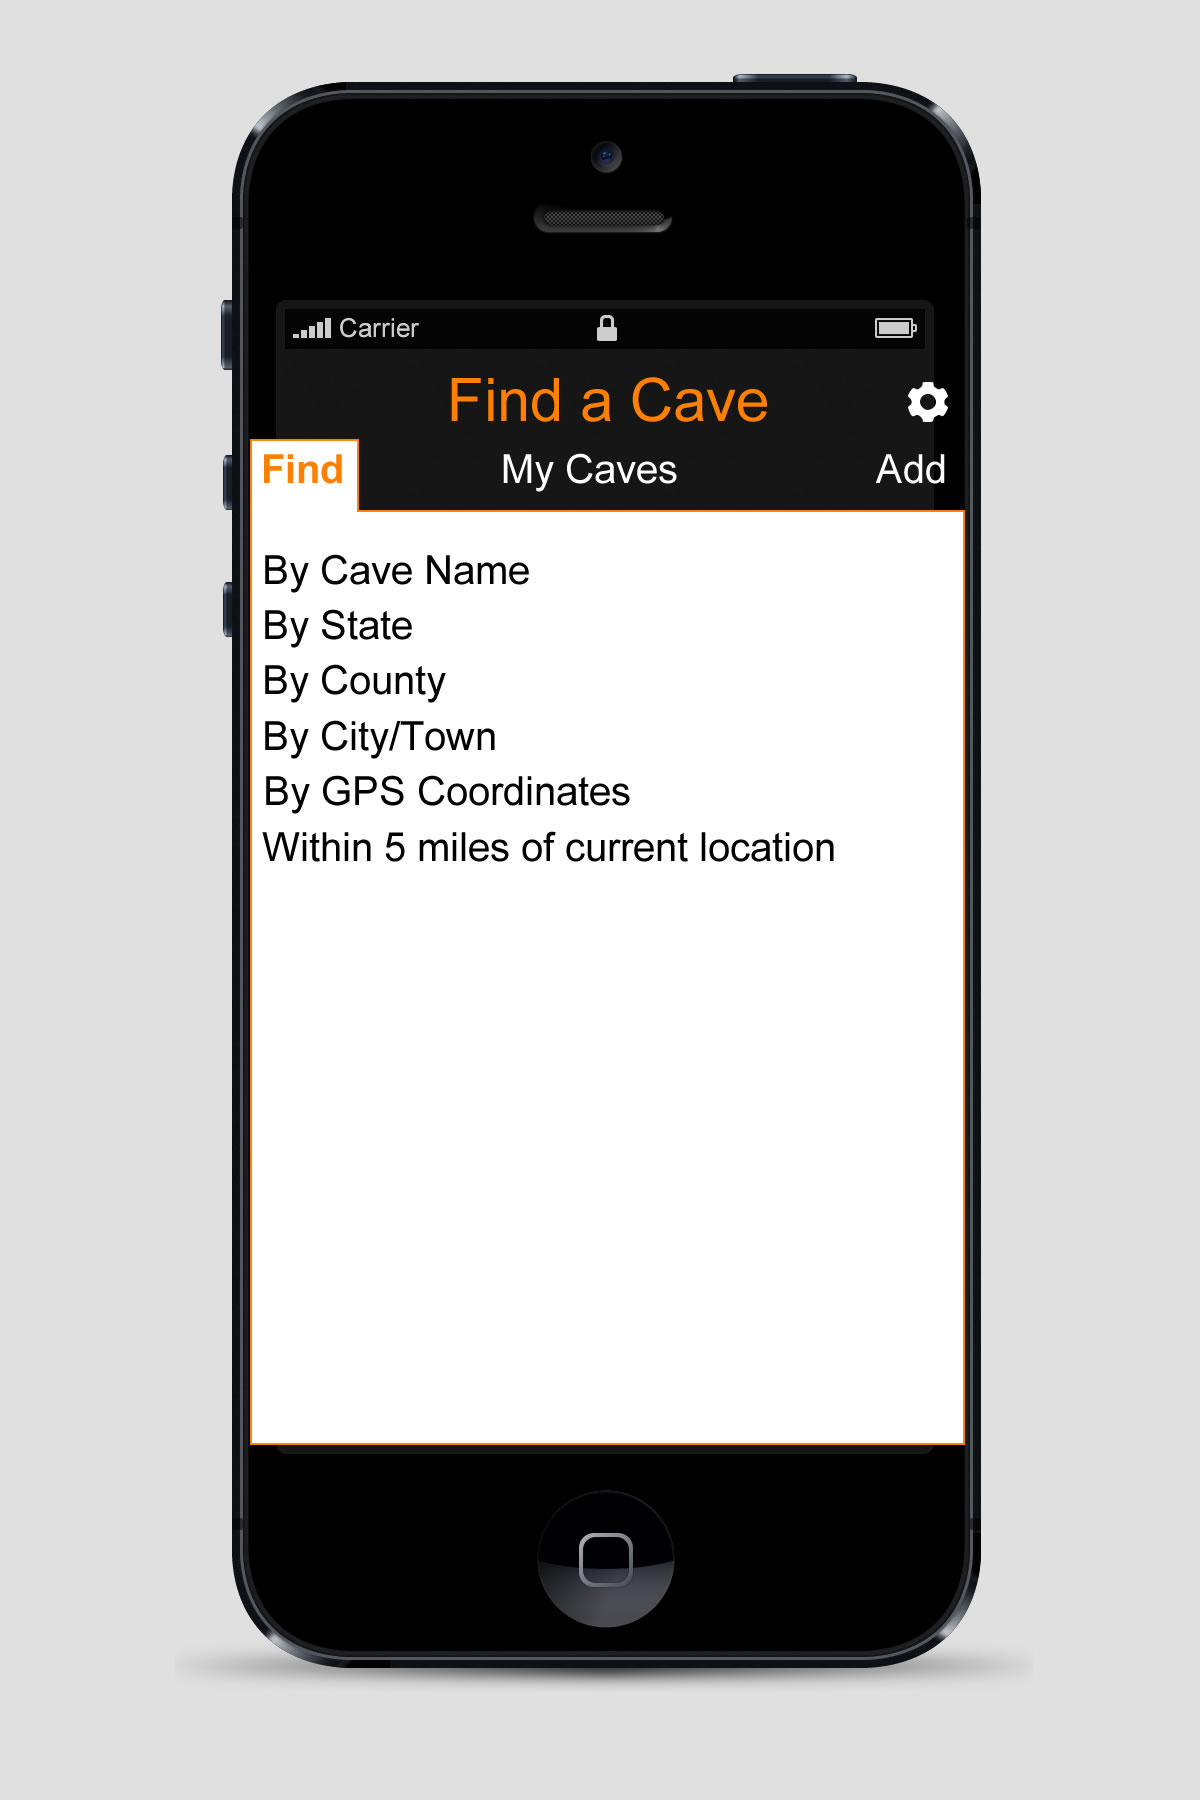 Find a Cave mobile application